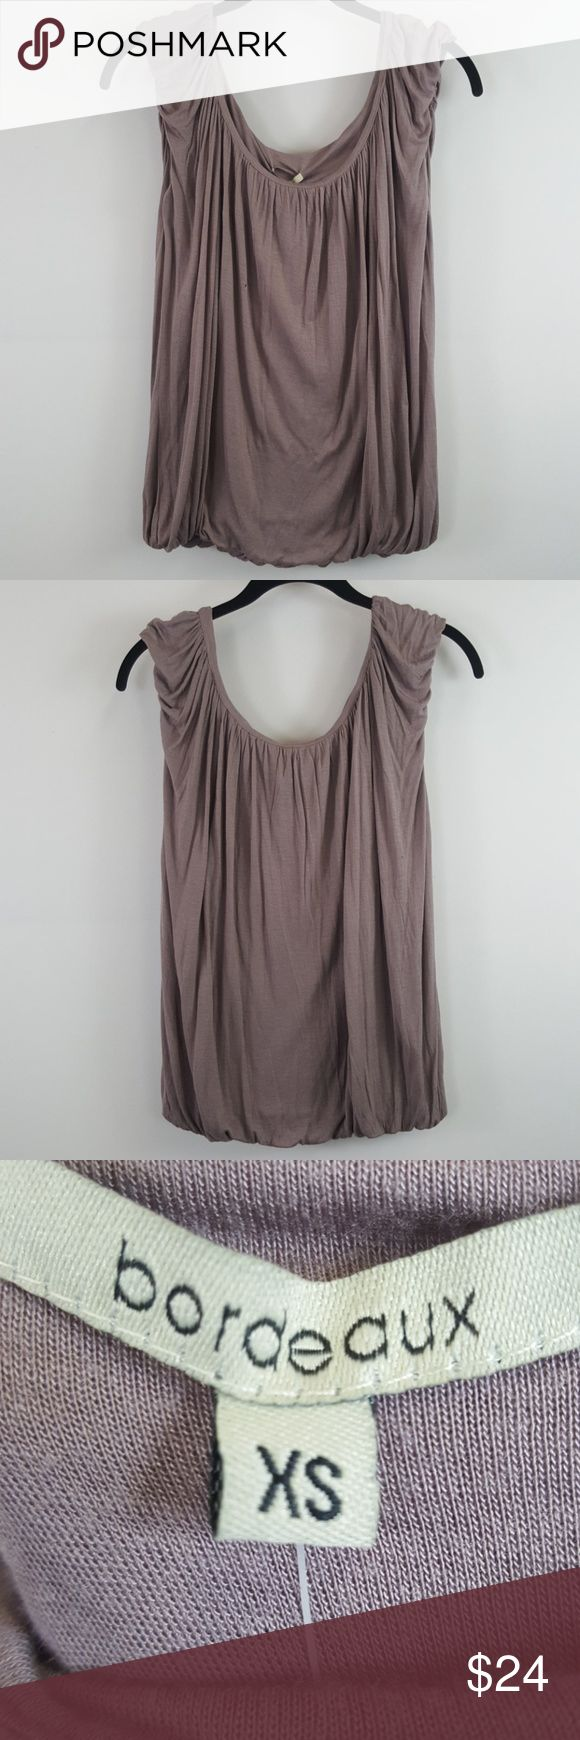 """Bordeaux ANTHRO Cotton Short Sleeve Top Bordeaux lilac pleated top from anthro. Very Small hole on front as seen on picture from where the price tag was! So comfy  Size-x-small  Bust-30"""" Waist-42"""" Length-46"""" Anthropologie Tops Tank Tops"""